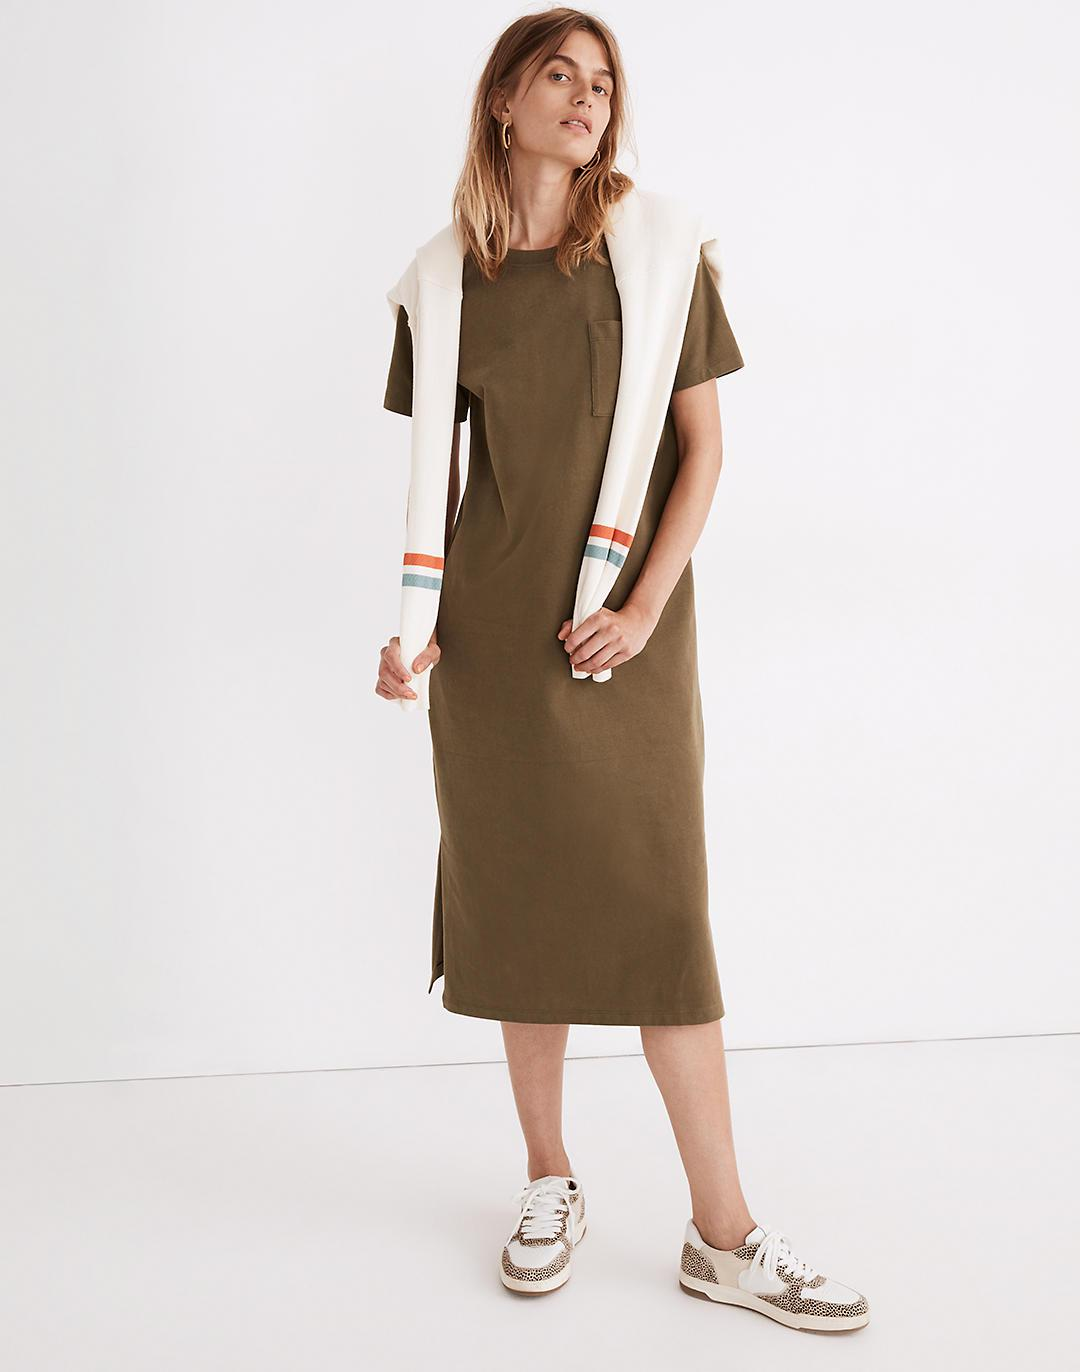 Oversized Pocket Tee Dress in Sueded Cotton